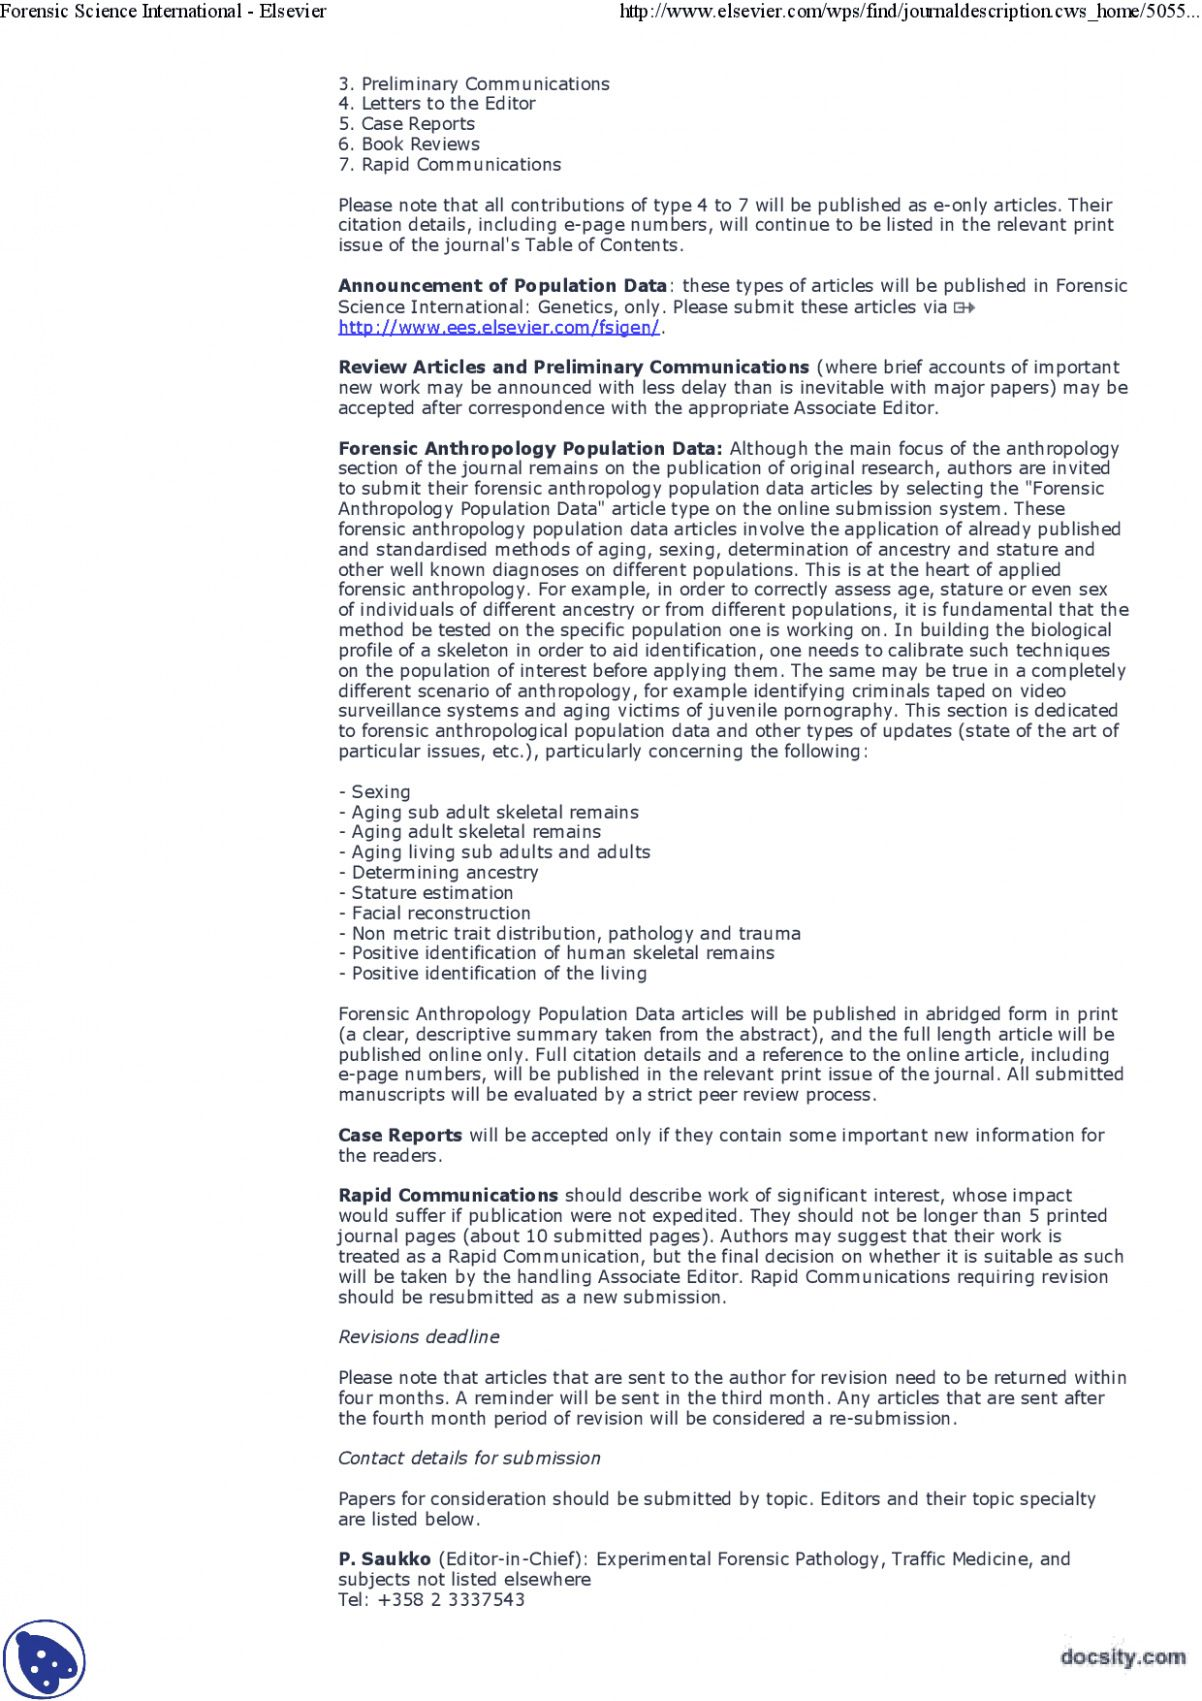 27+ Cover Letter For Journal Submission Resume cover